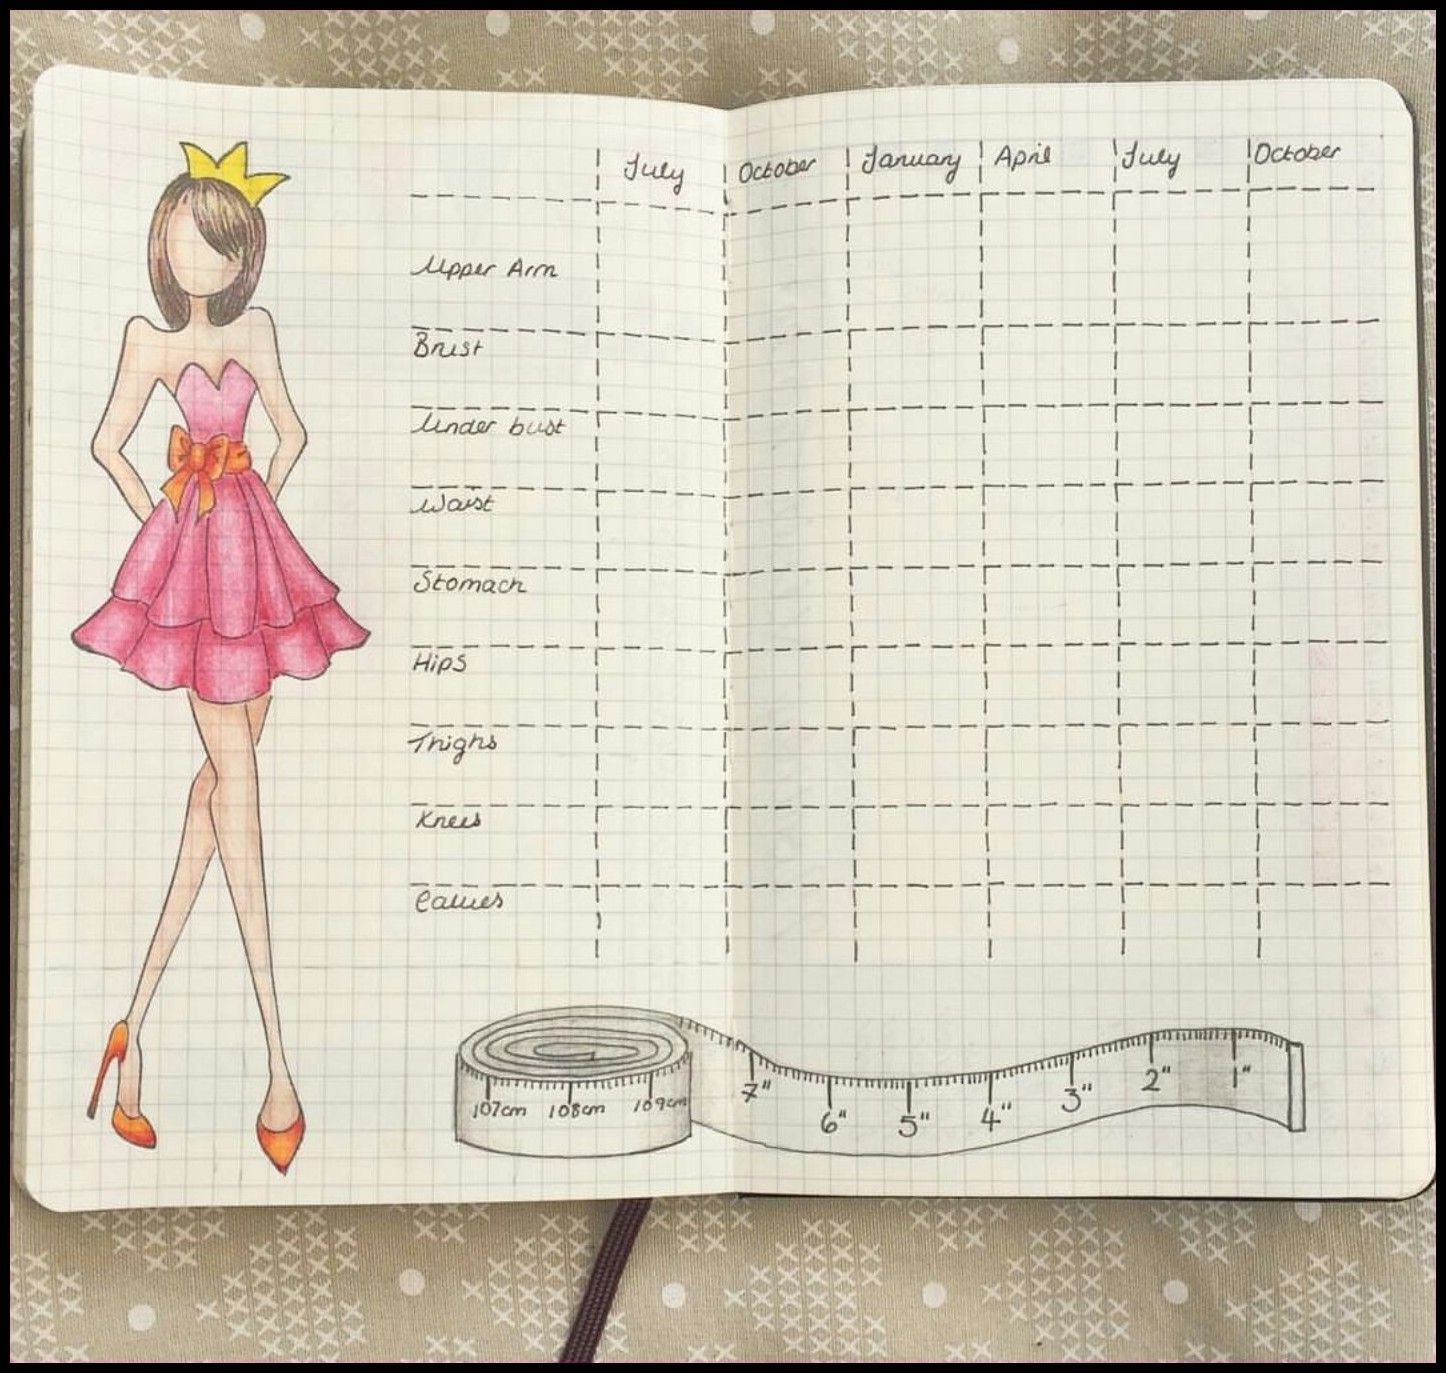 photograph regarding Bullet Journal Weight Loss Tracker Printable titled Pin upon Bullet Magazine